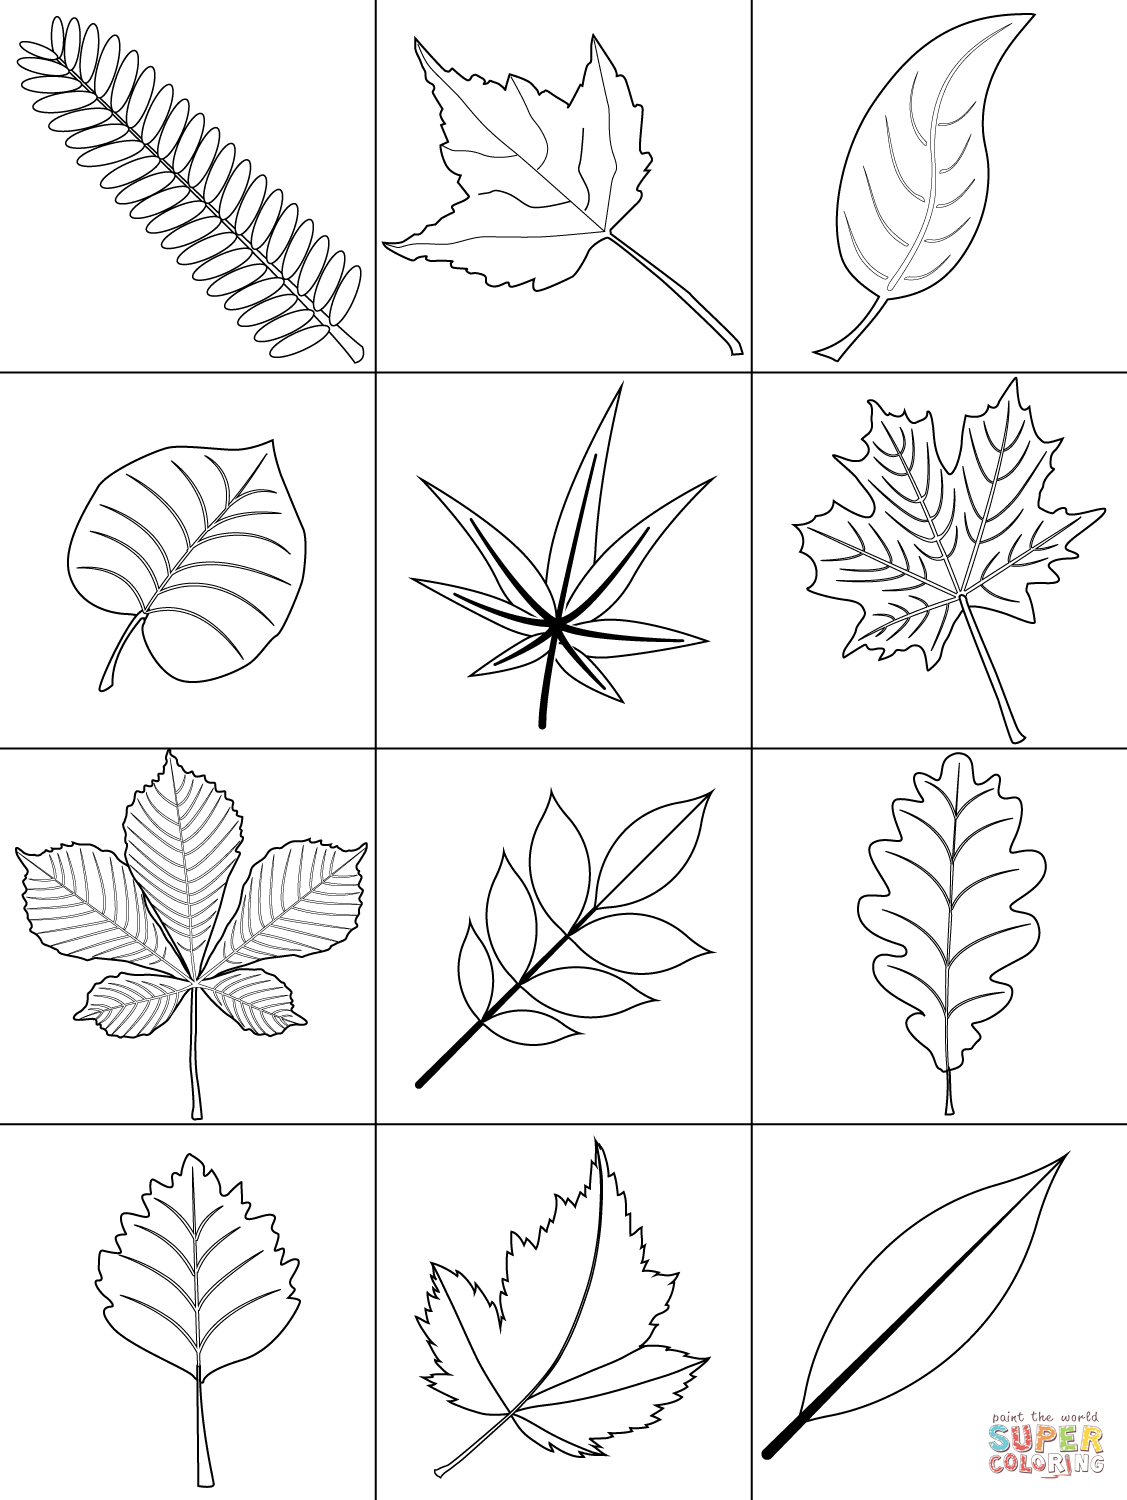 Leaf Coloring Page Autumn Leaves Coloring Pages Autumn Leaves Coloring Page Free